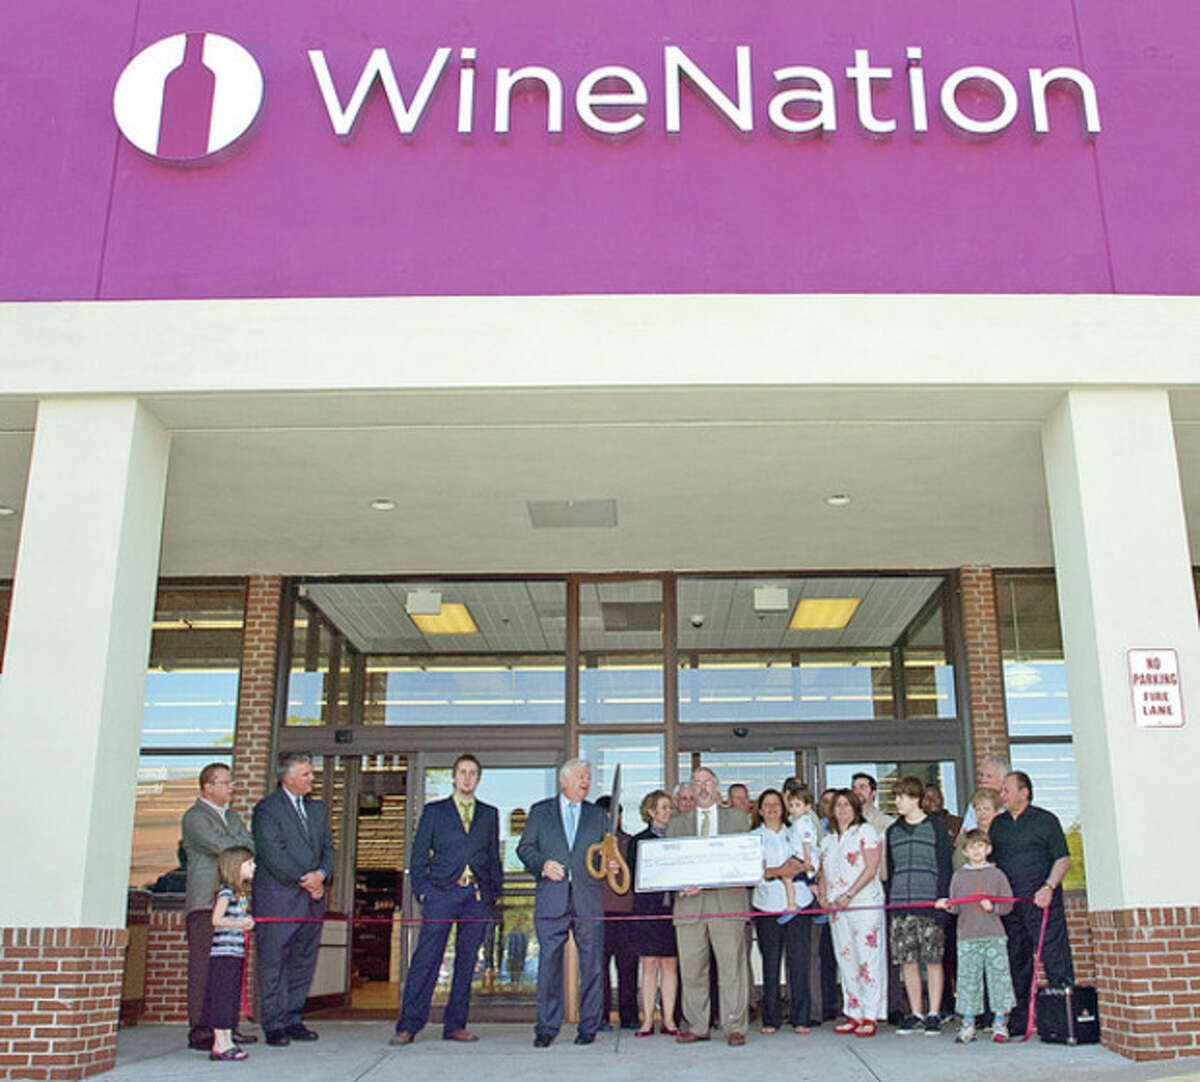 Norwalk mayor Richard Moccia, Wine Nation CEO Thomas Trone, friends and family gather outside the store during the ribbon cutting ceremony for their new store on Main Ave Friday. Hour photo / Erik Trautmann